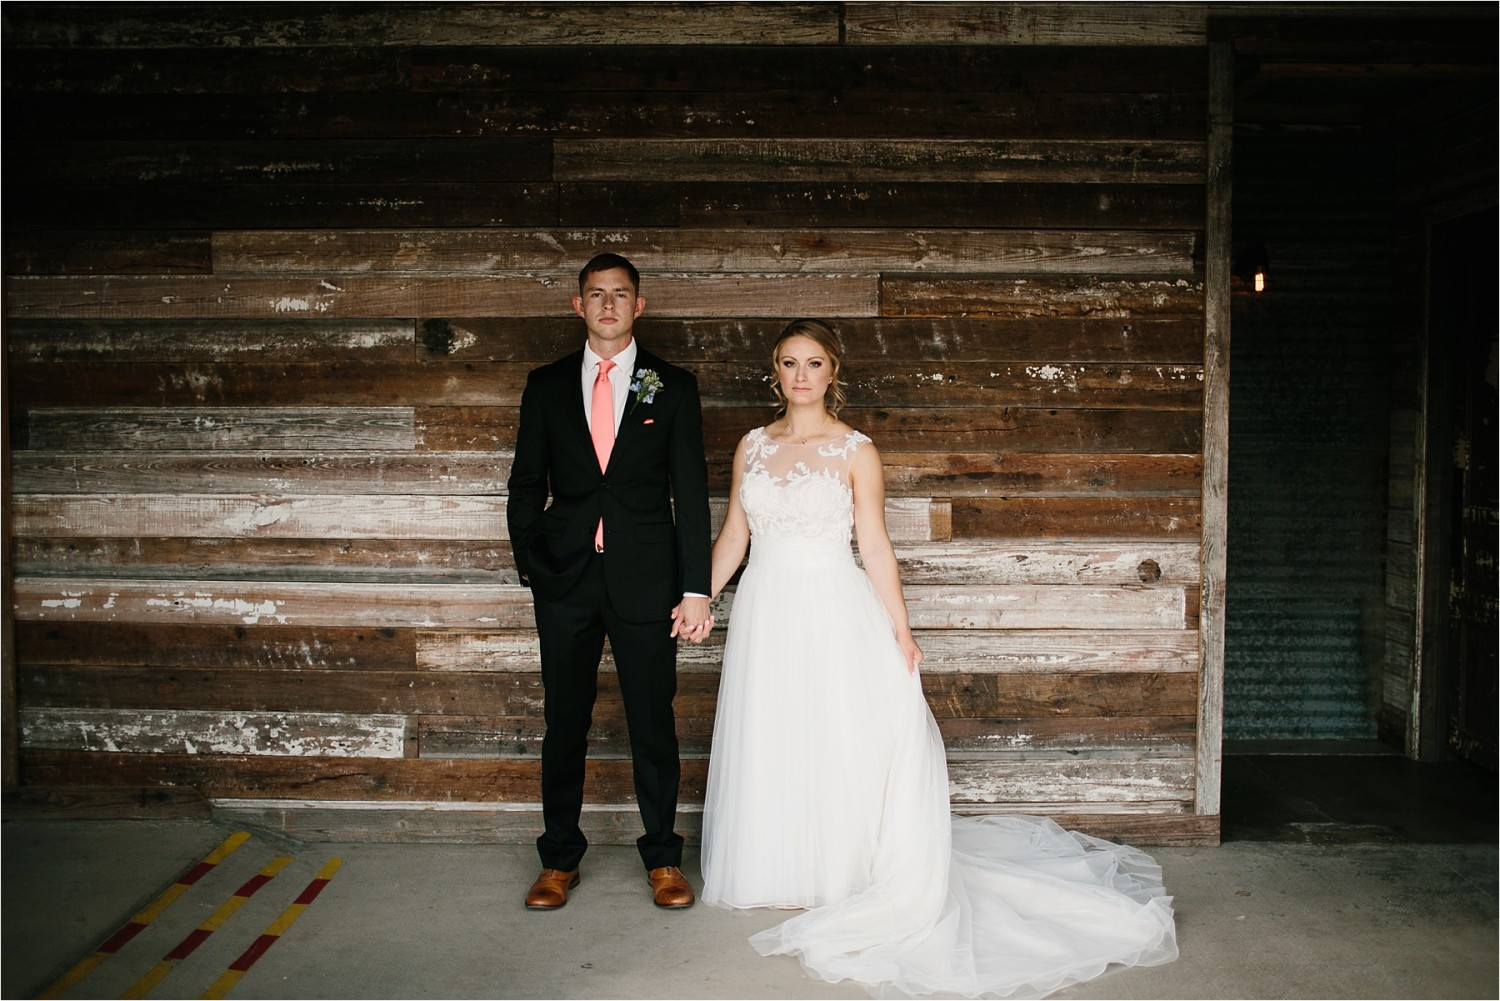 a-riffle-paper-co-inspired-color-pallete-wedding-at-mopac-event-center-in-fort-worth-tx-by-north-texas-wedding-photographer-rachel-meagan-photography-_-019